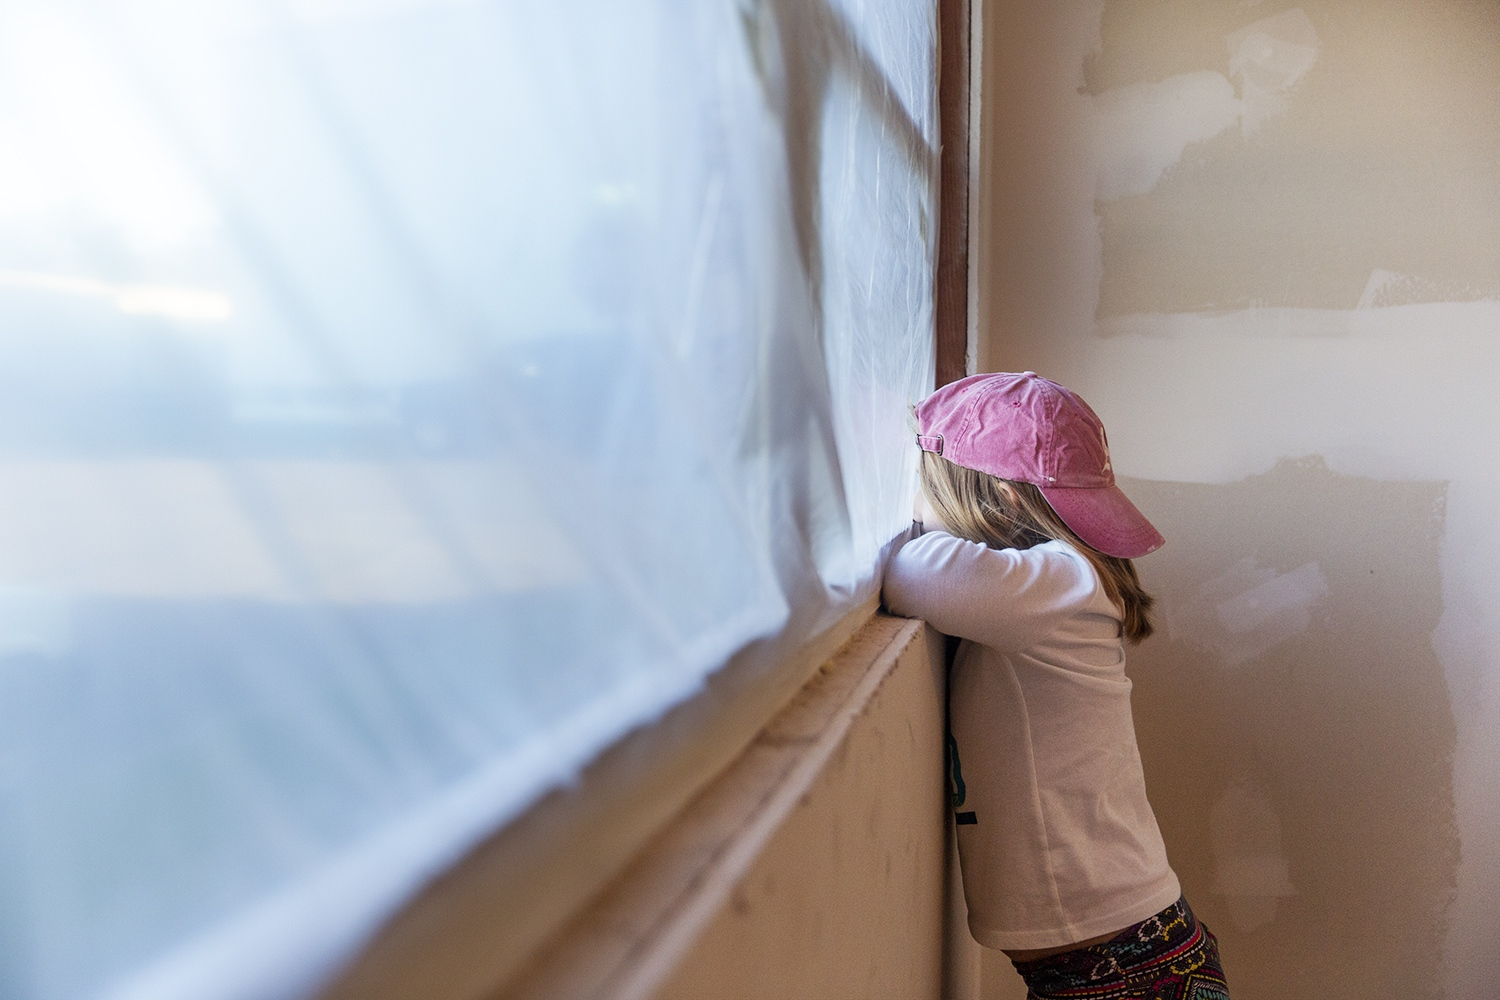 Katherine stands by the window while her mother, Sarah, paints the walls.